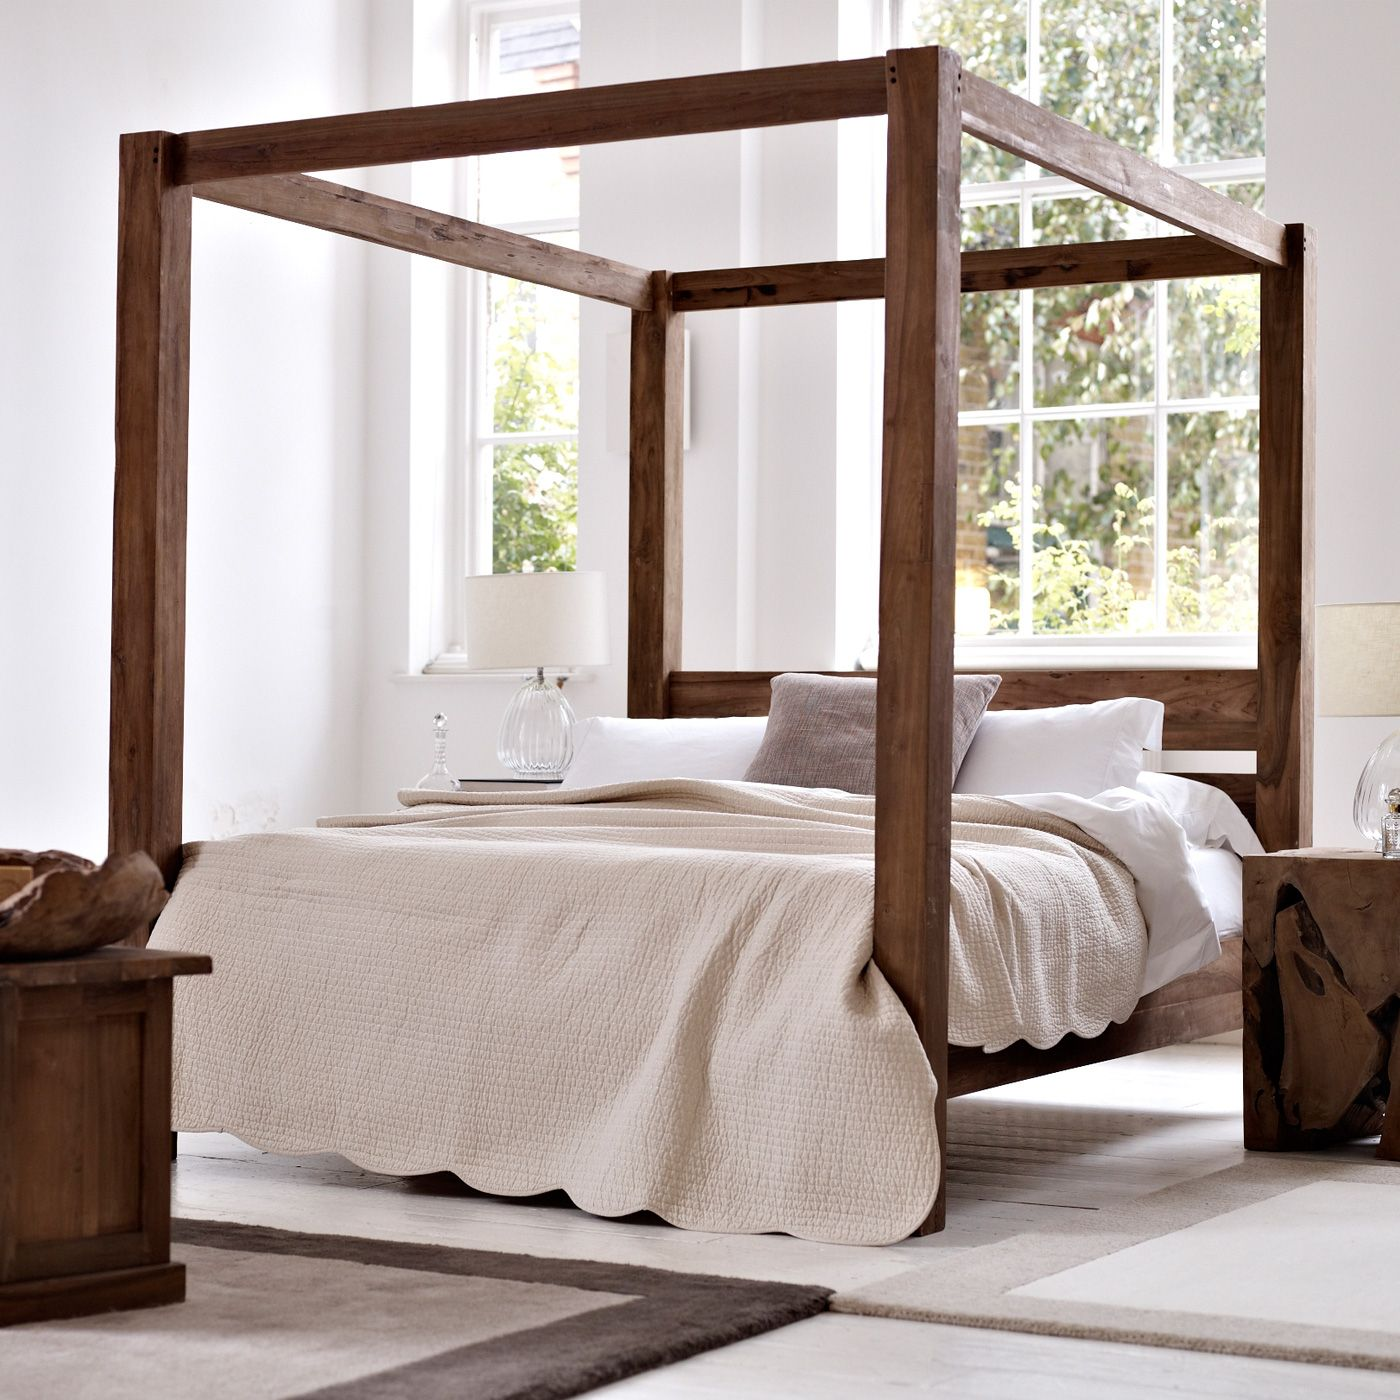 Wooden Four Post Bed Four Poster Bed Four Poster Bed Frame